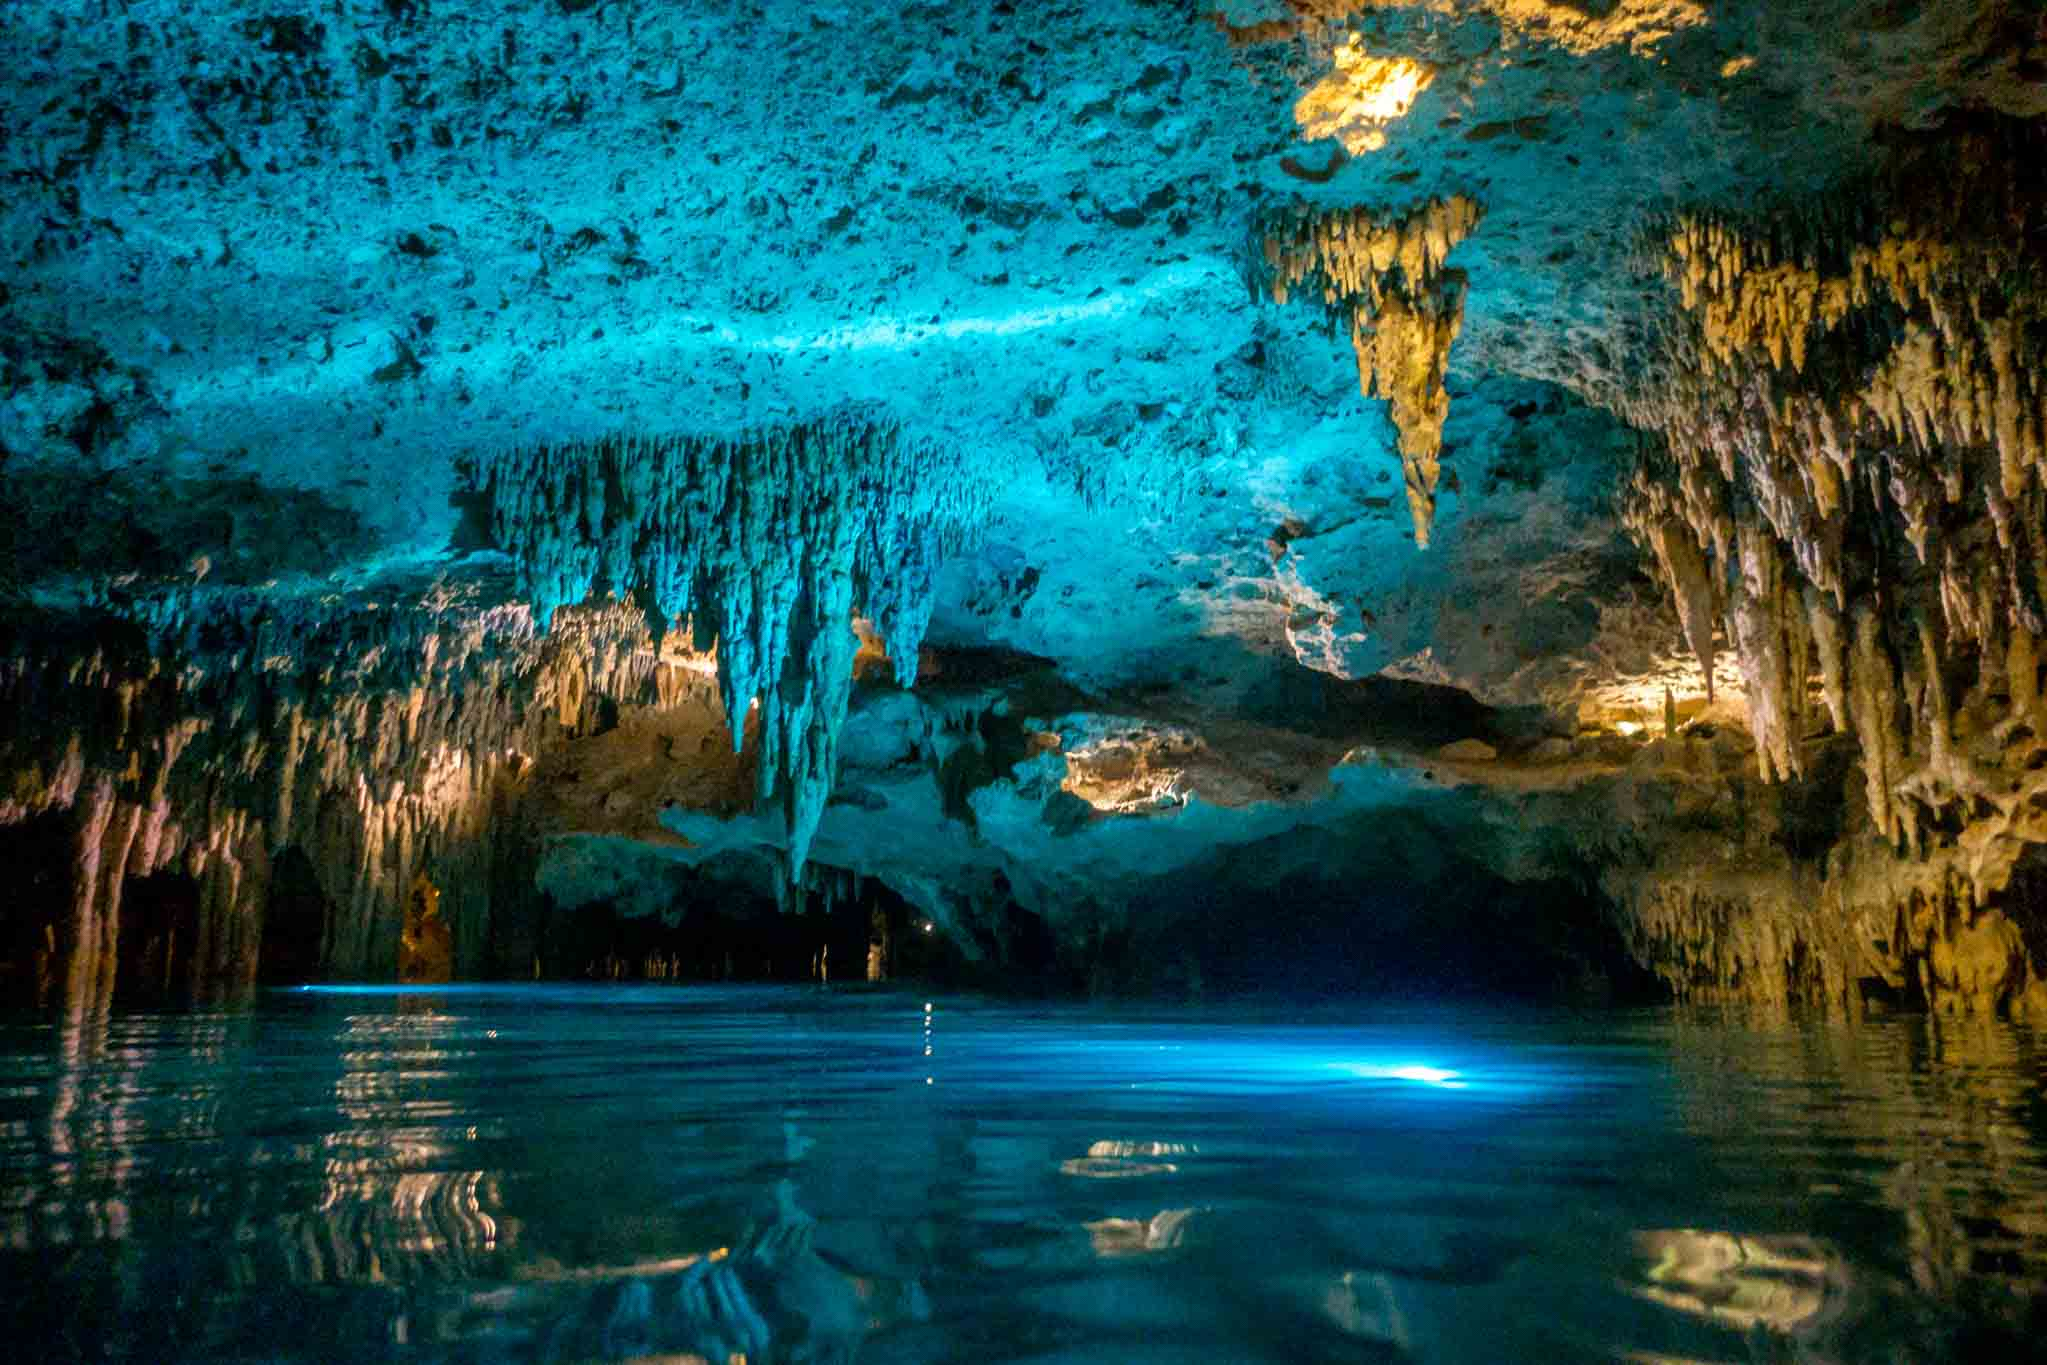 Swimming in an underground river is one of the popular activities at Xplor adventure park in Mexico